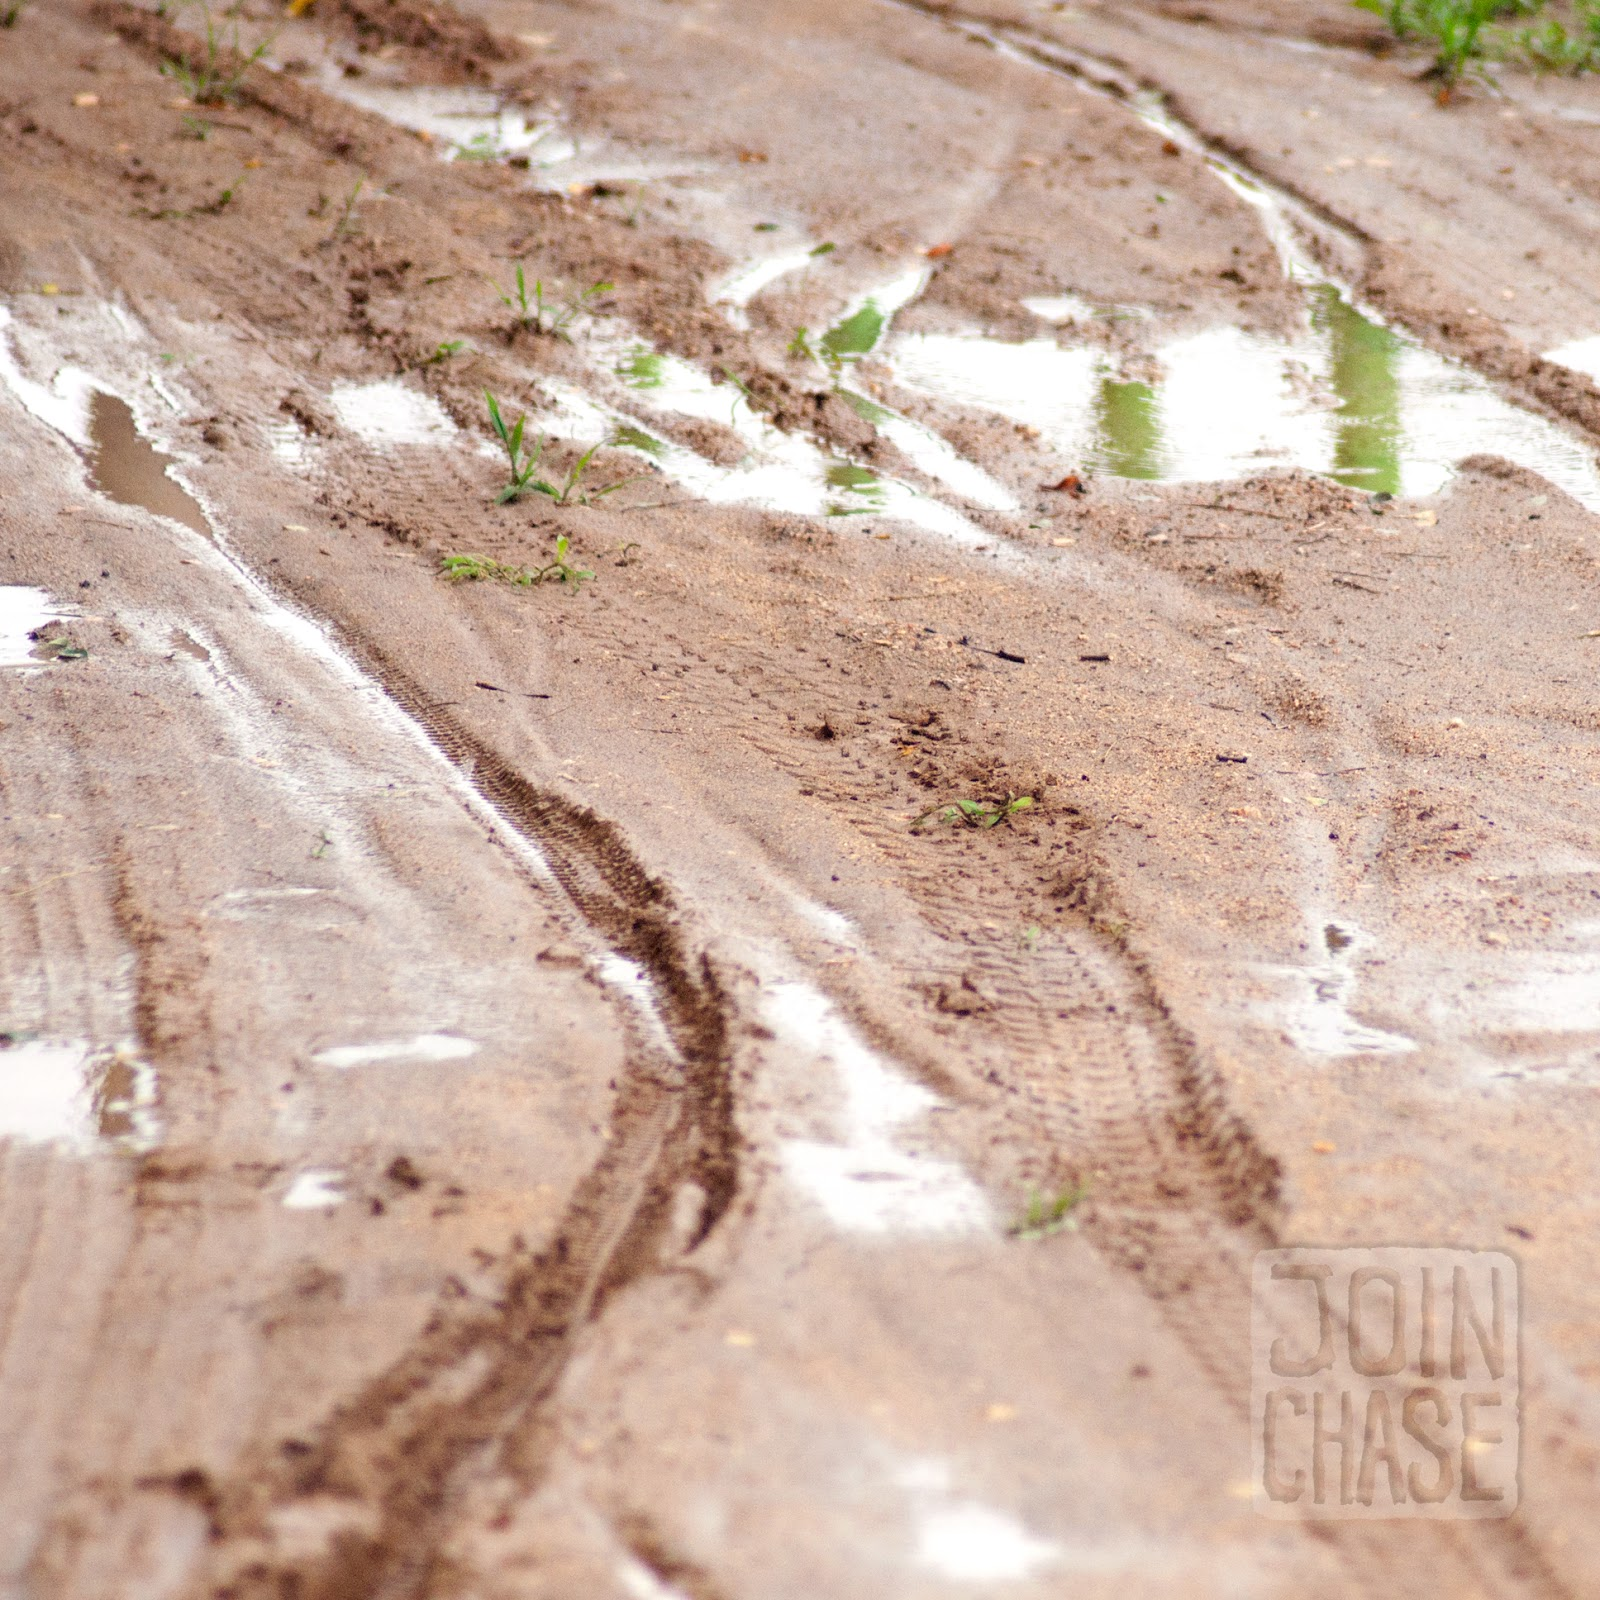 Mud with tire tracks in it along the Geum River Bike Path in South Korea.